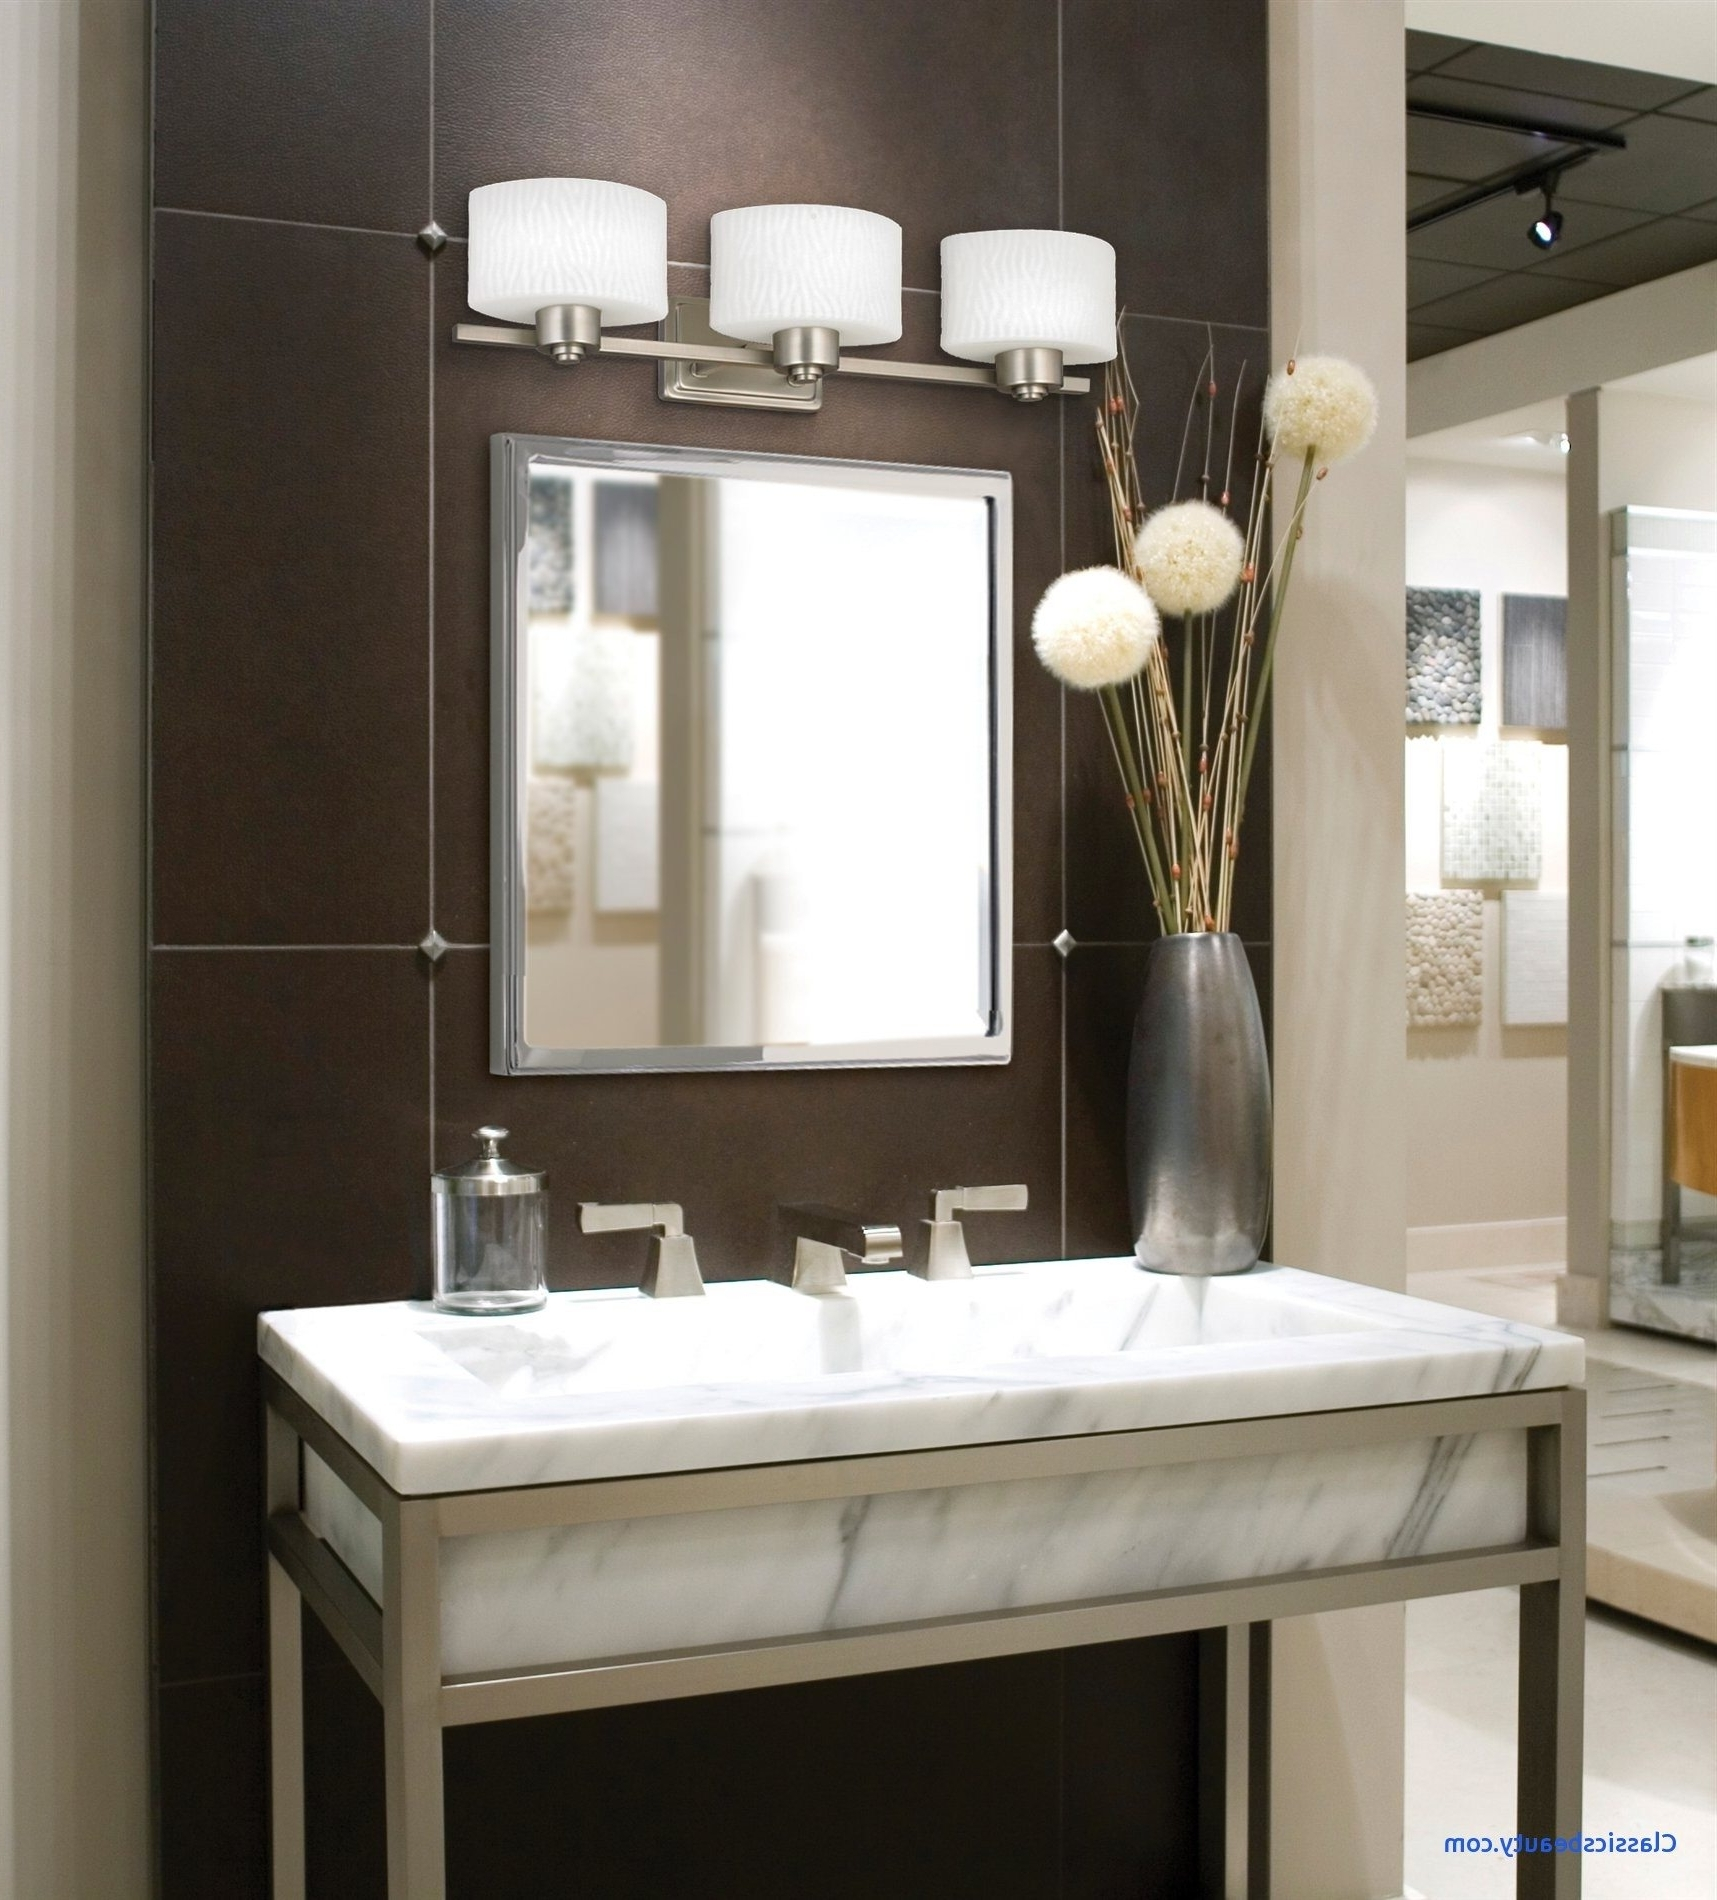 Chandelier Bathroom Vanity Lighting With Newest Hanging Bathroom Lights – Nice Hanging Bathroom Lights Tags (View 11 of 20)